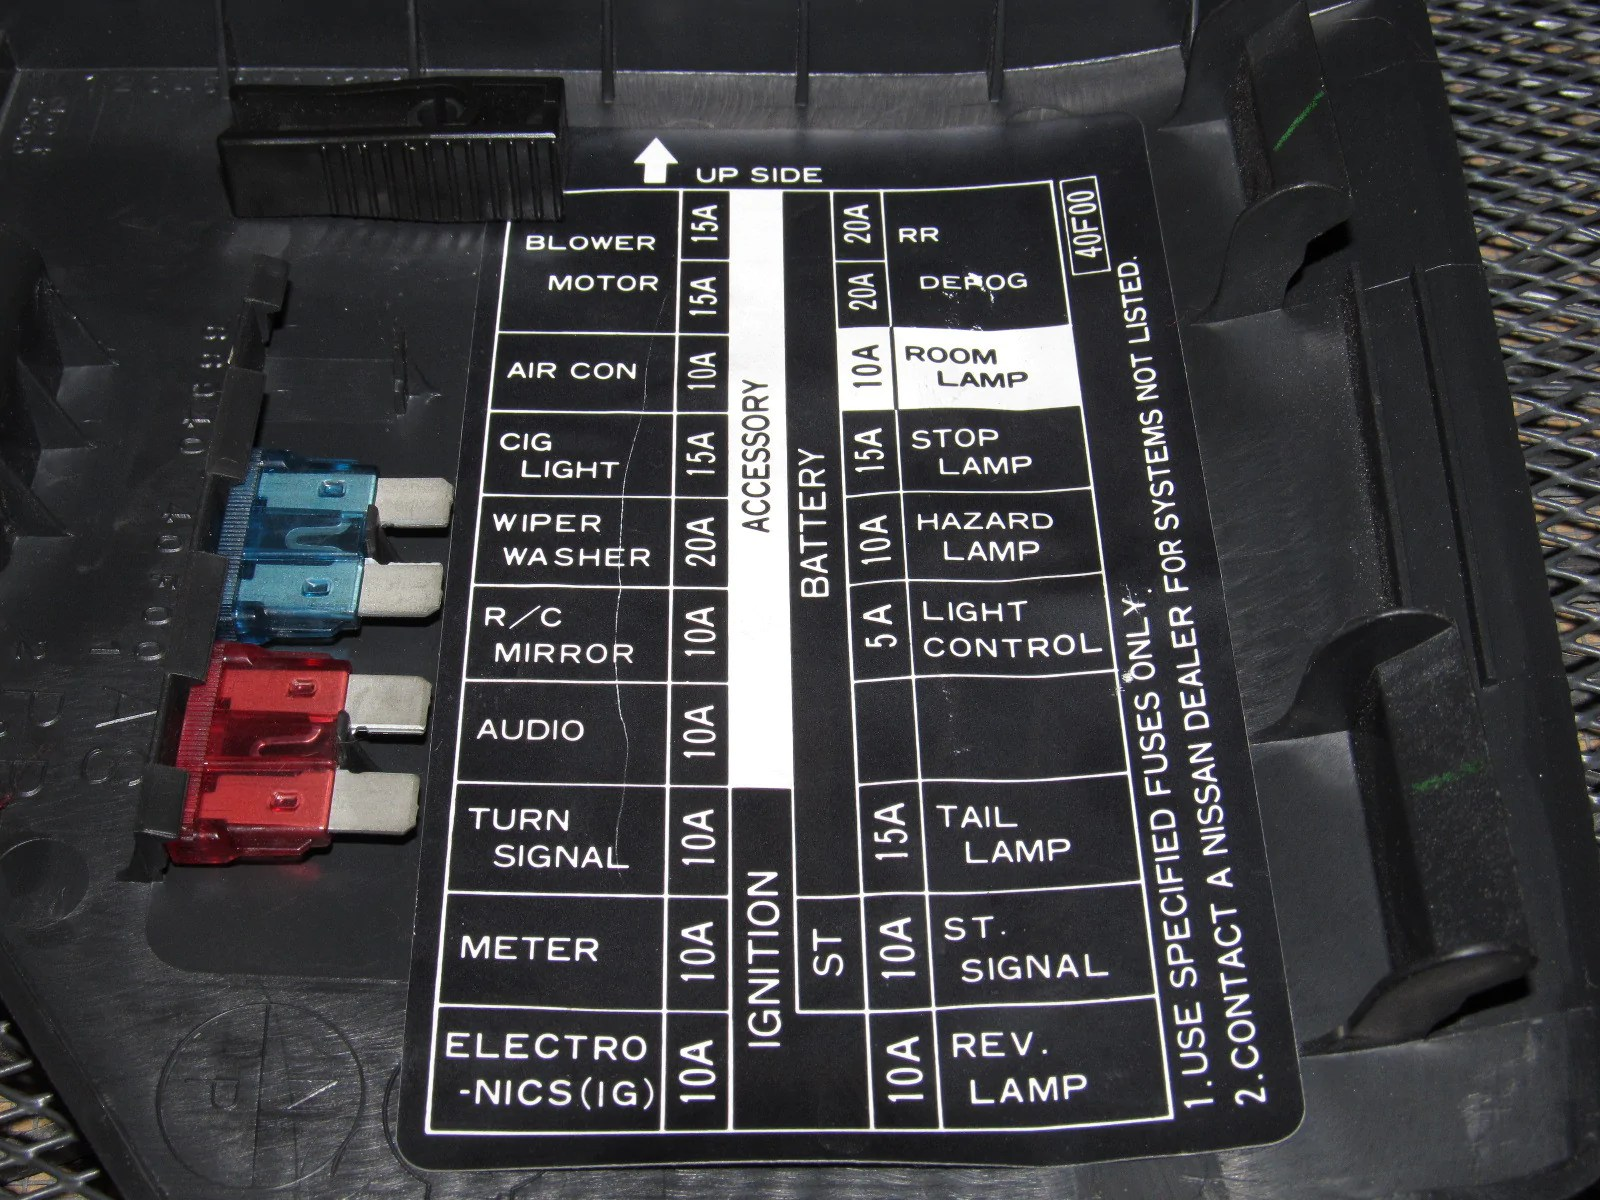 medium resolution of 90 240sx fuse box cover wiring diagrams scematic mazda 3 fuse box 240sx fuse box